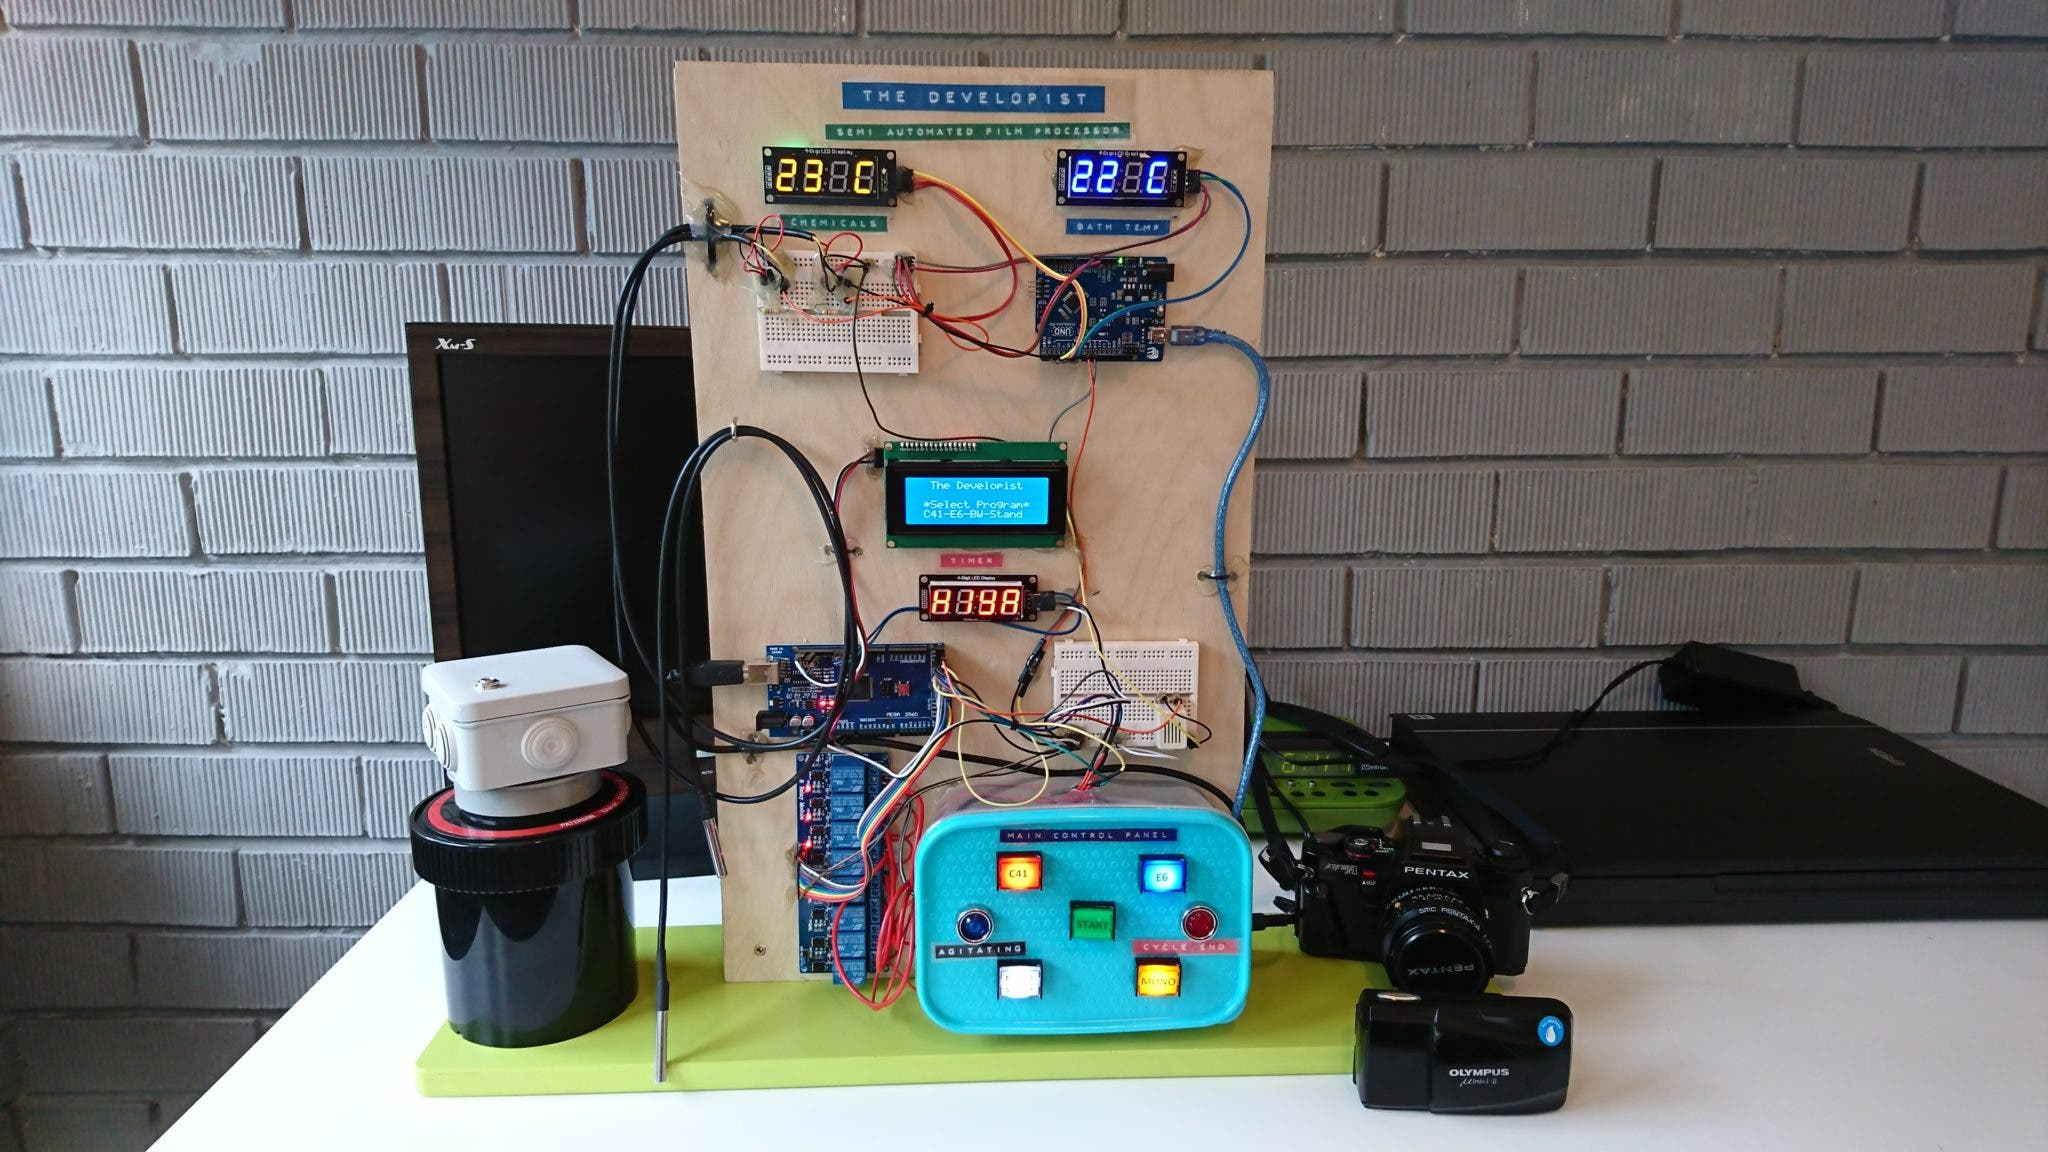 """The Developist"" Is a DIY Semi Automated Assistant for Home Developing"